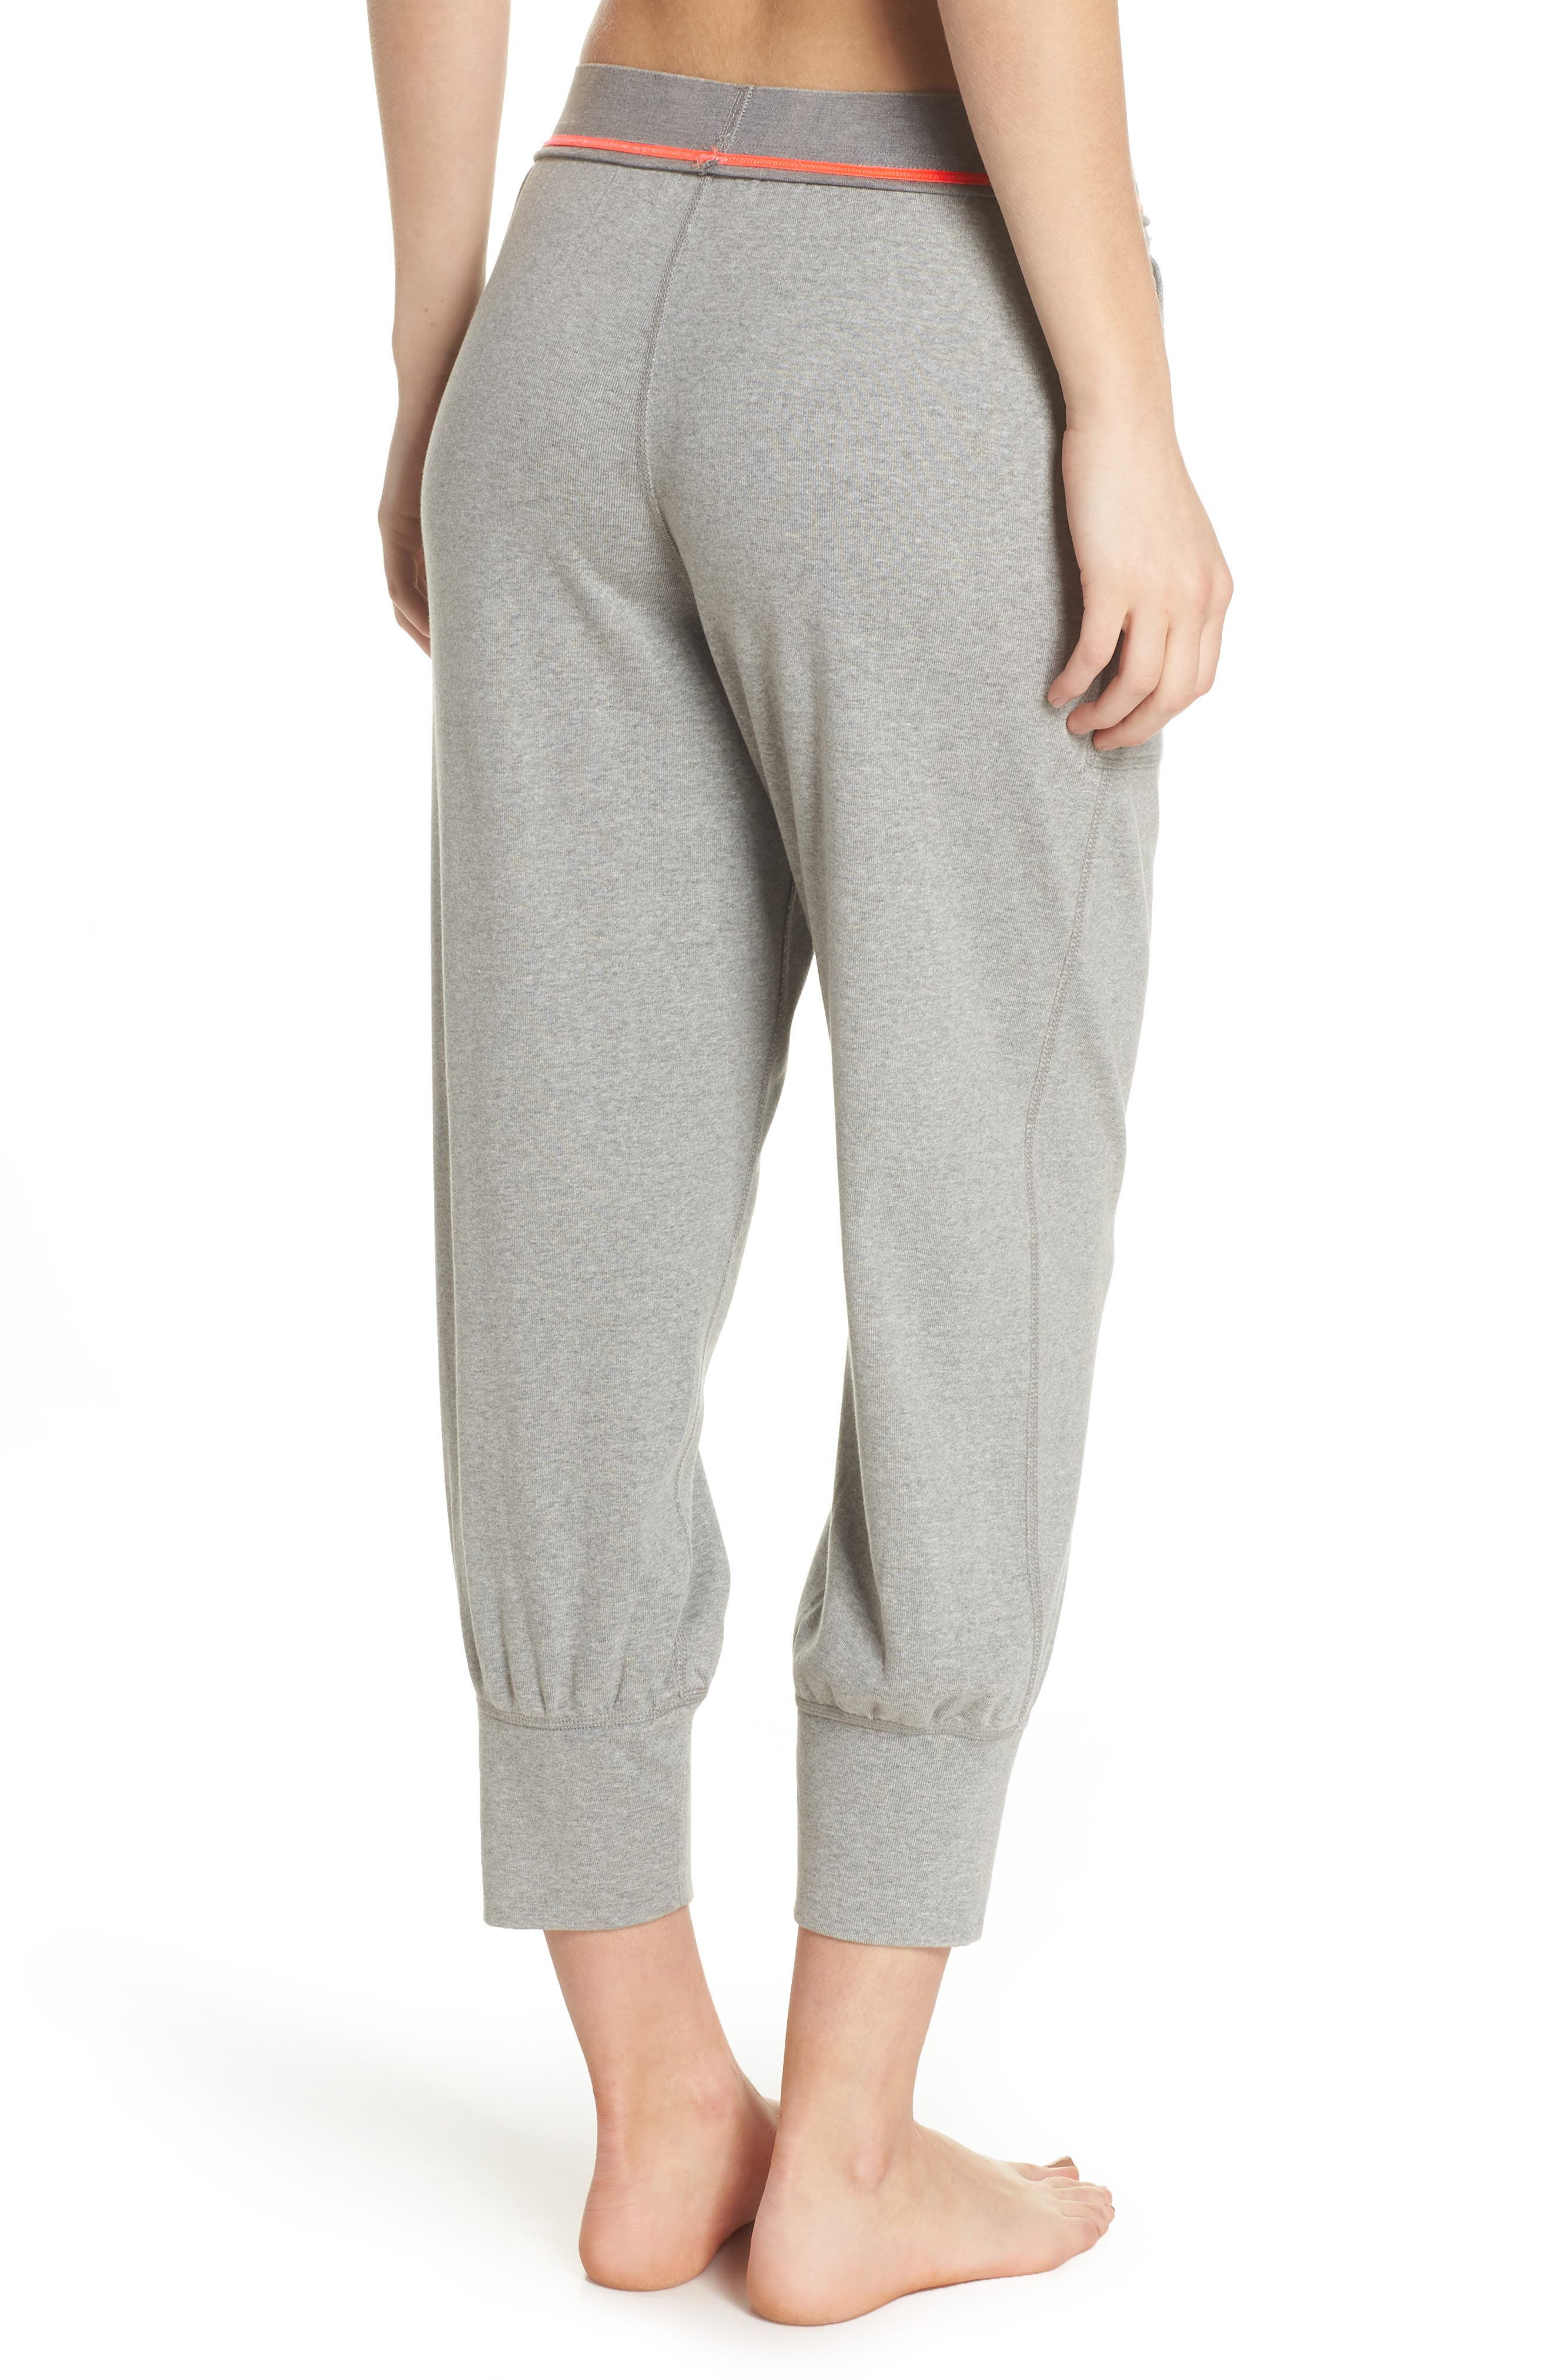 FREE PEOPLE MOVEMENT,                             Jordan Sweatpants,                             Alternate thumbnail 2, color,                             030